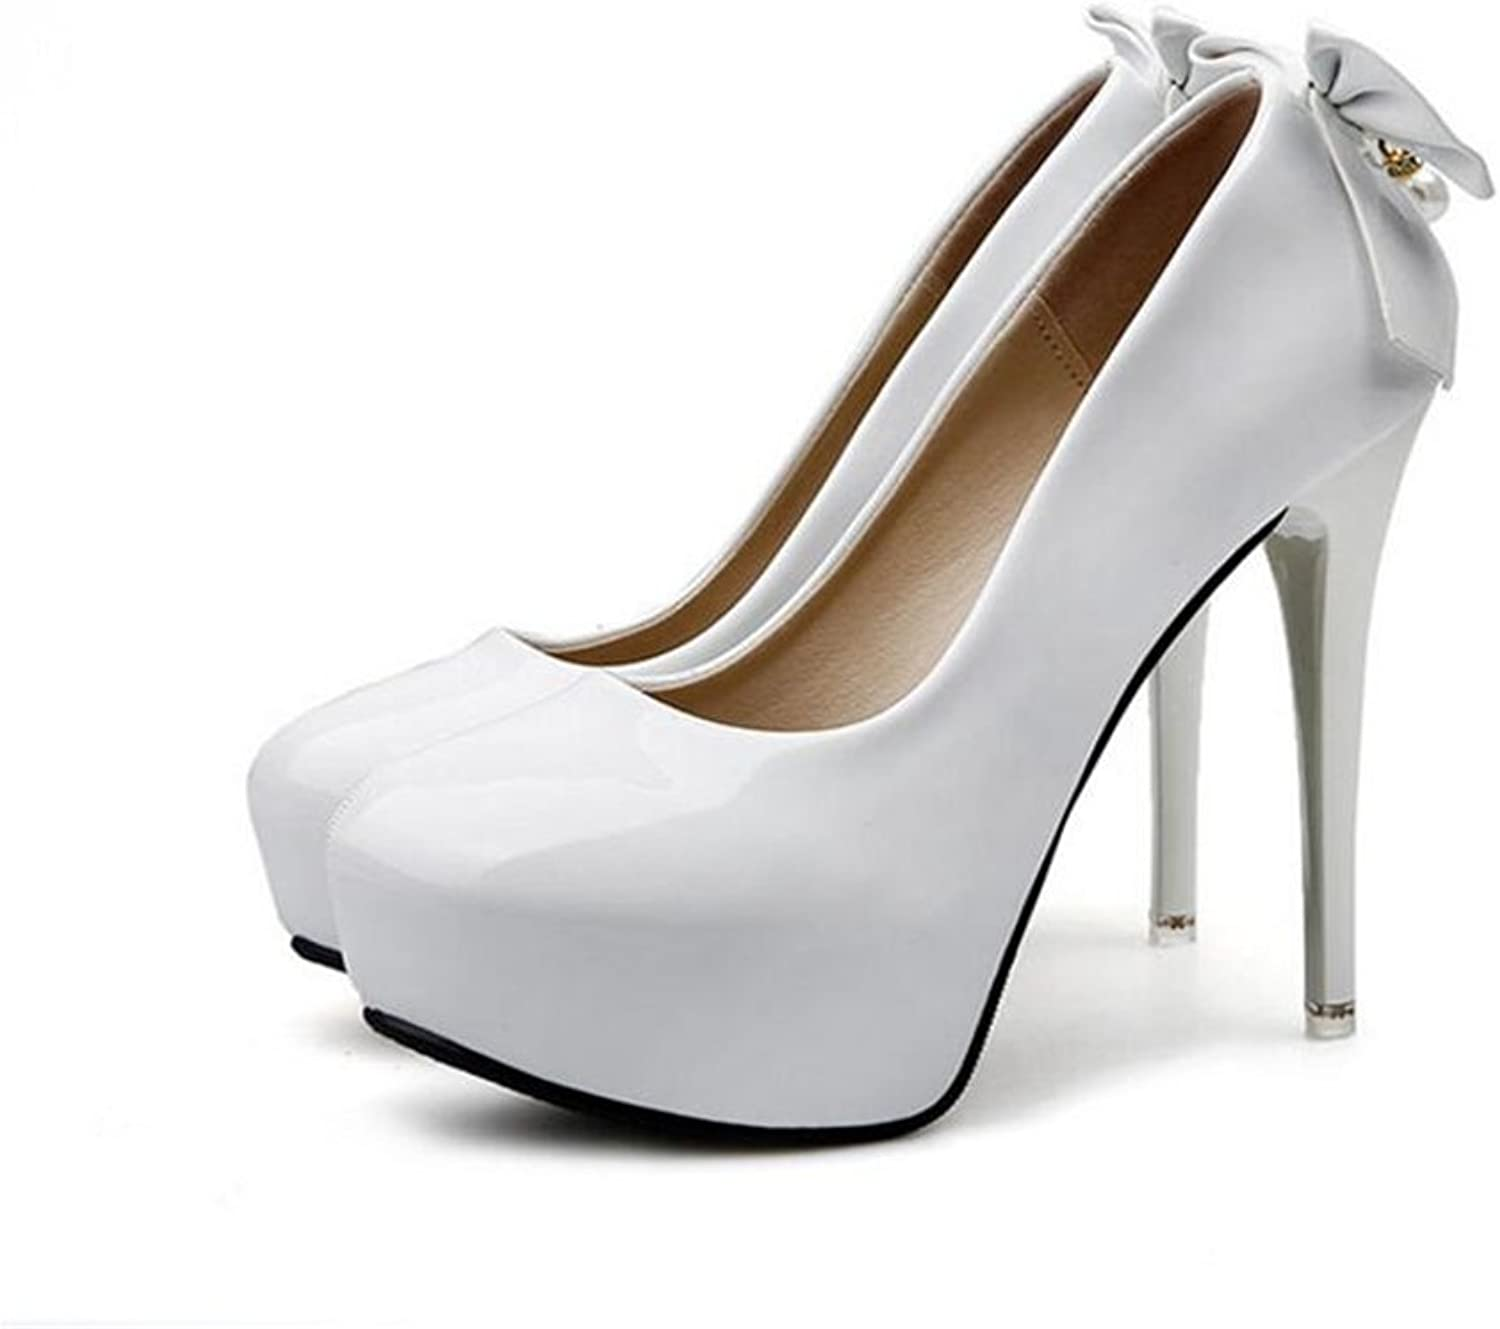 Cloudless High Heels, Womens Round Toe Slip on Stilettos Party Wedding Pumps Basic shoes